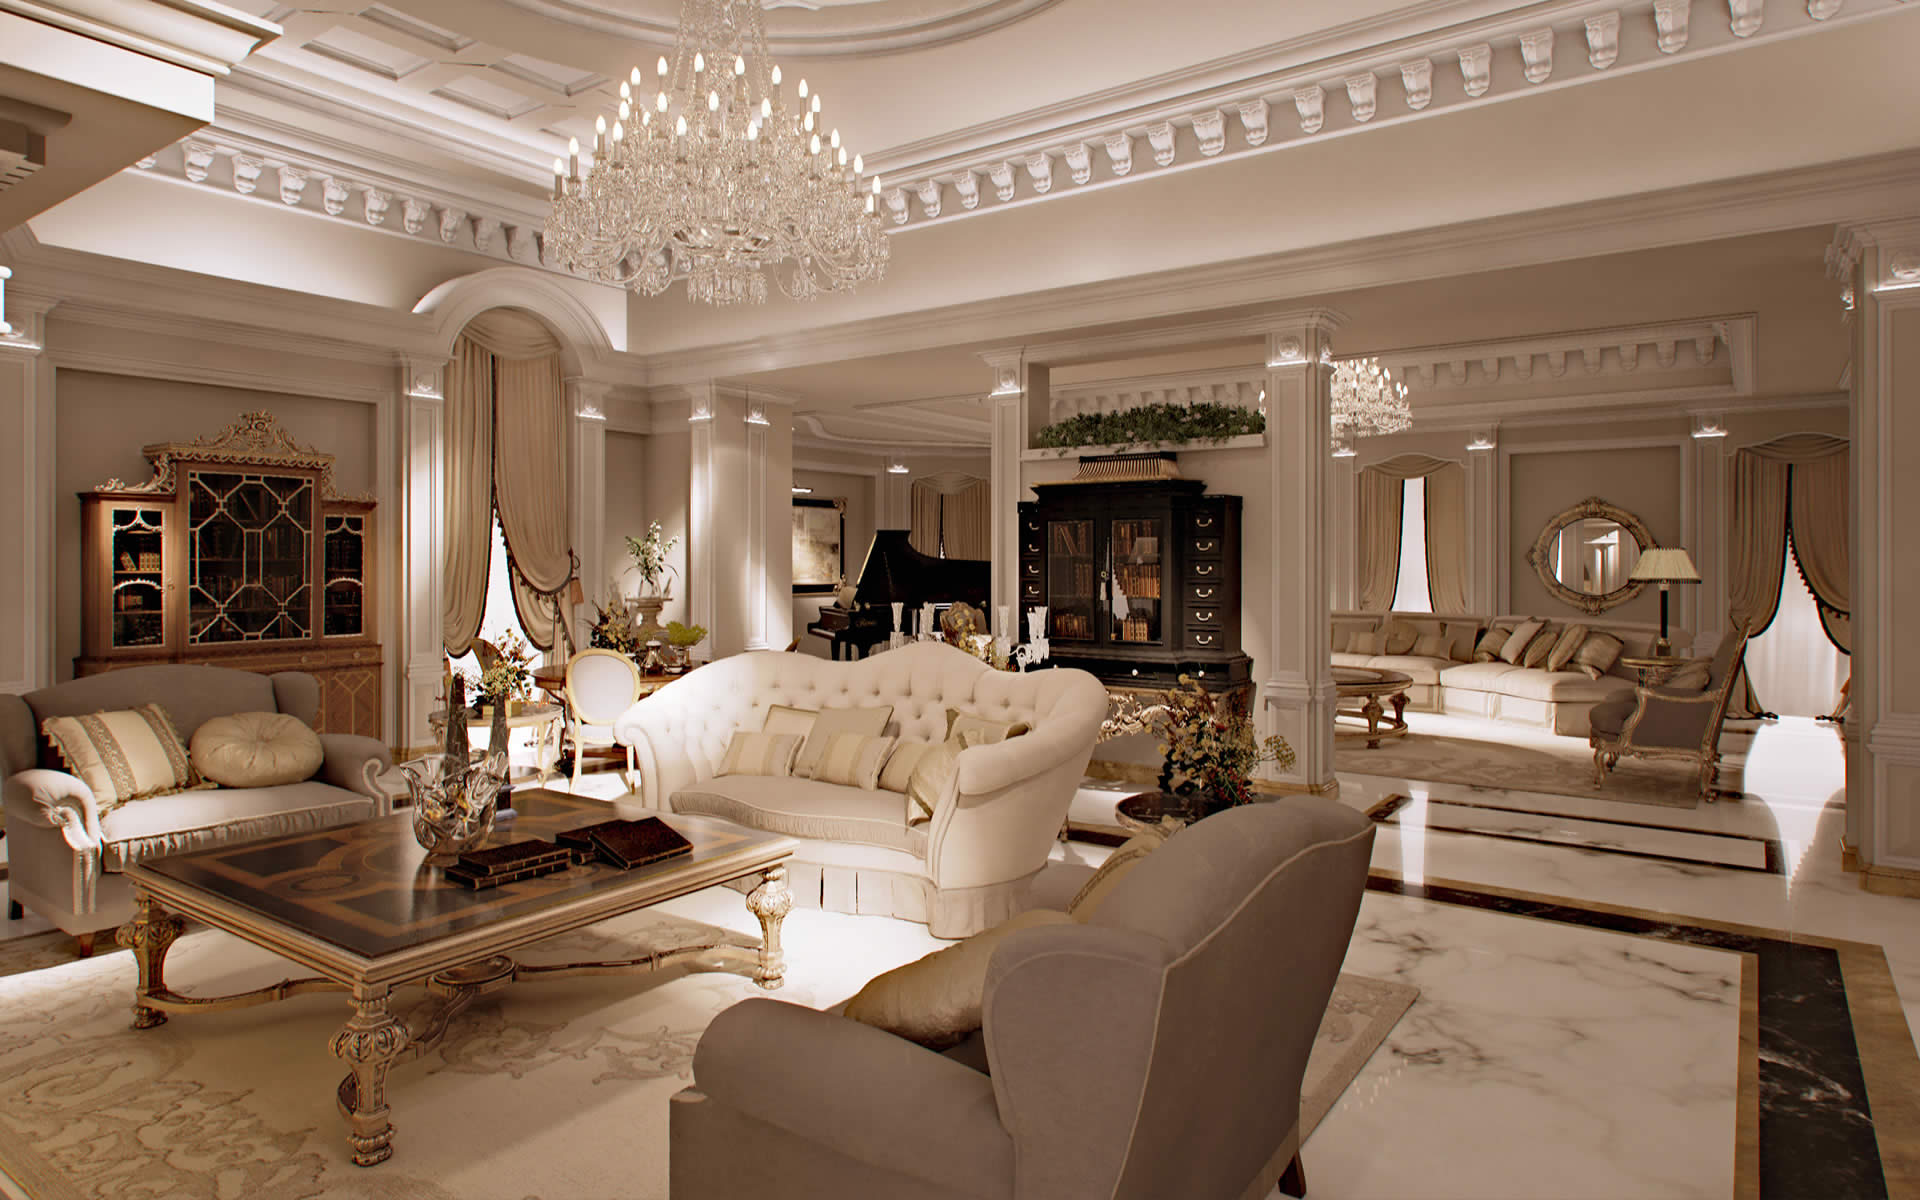 BLOOMBERG, UK REAL ESTATE: THE CRISIS OF LUXURY